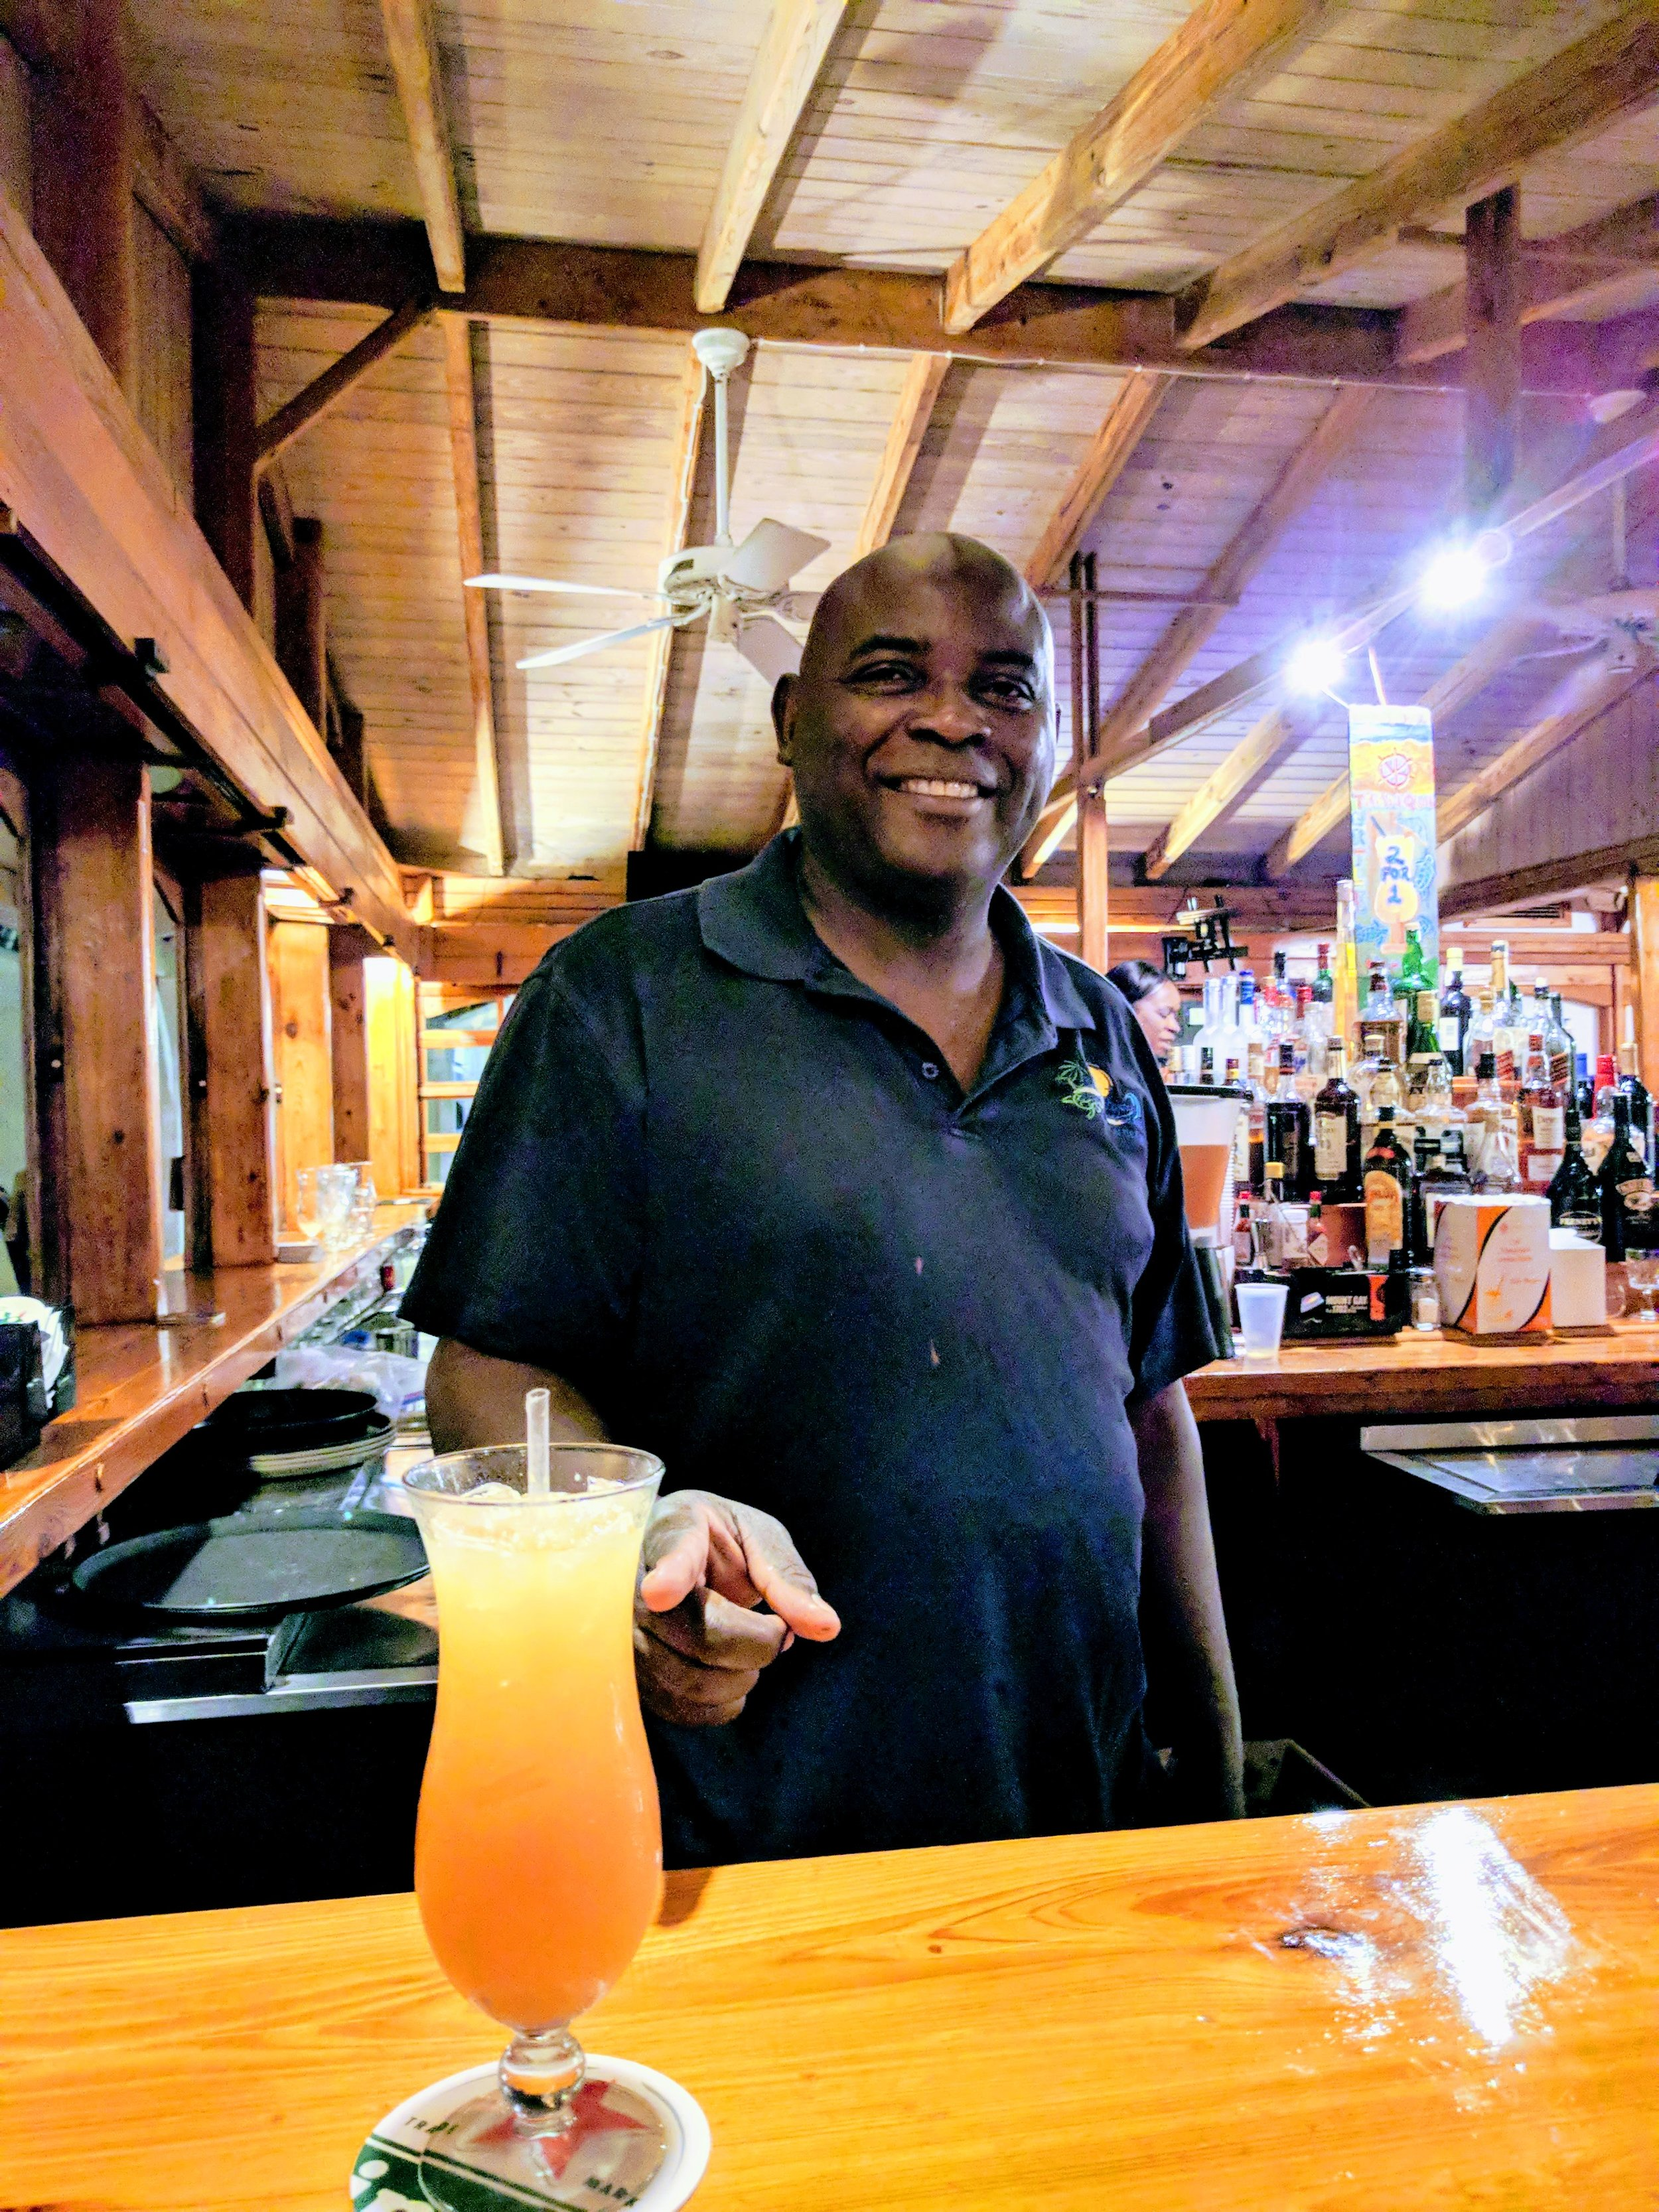 Our main man 'Juice'! The nicest bartender.